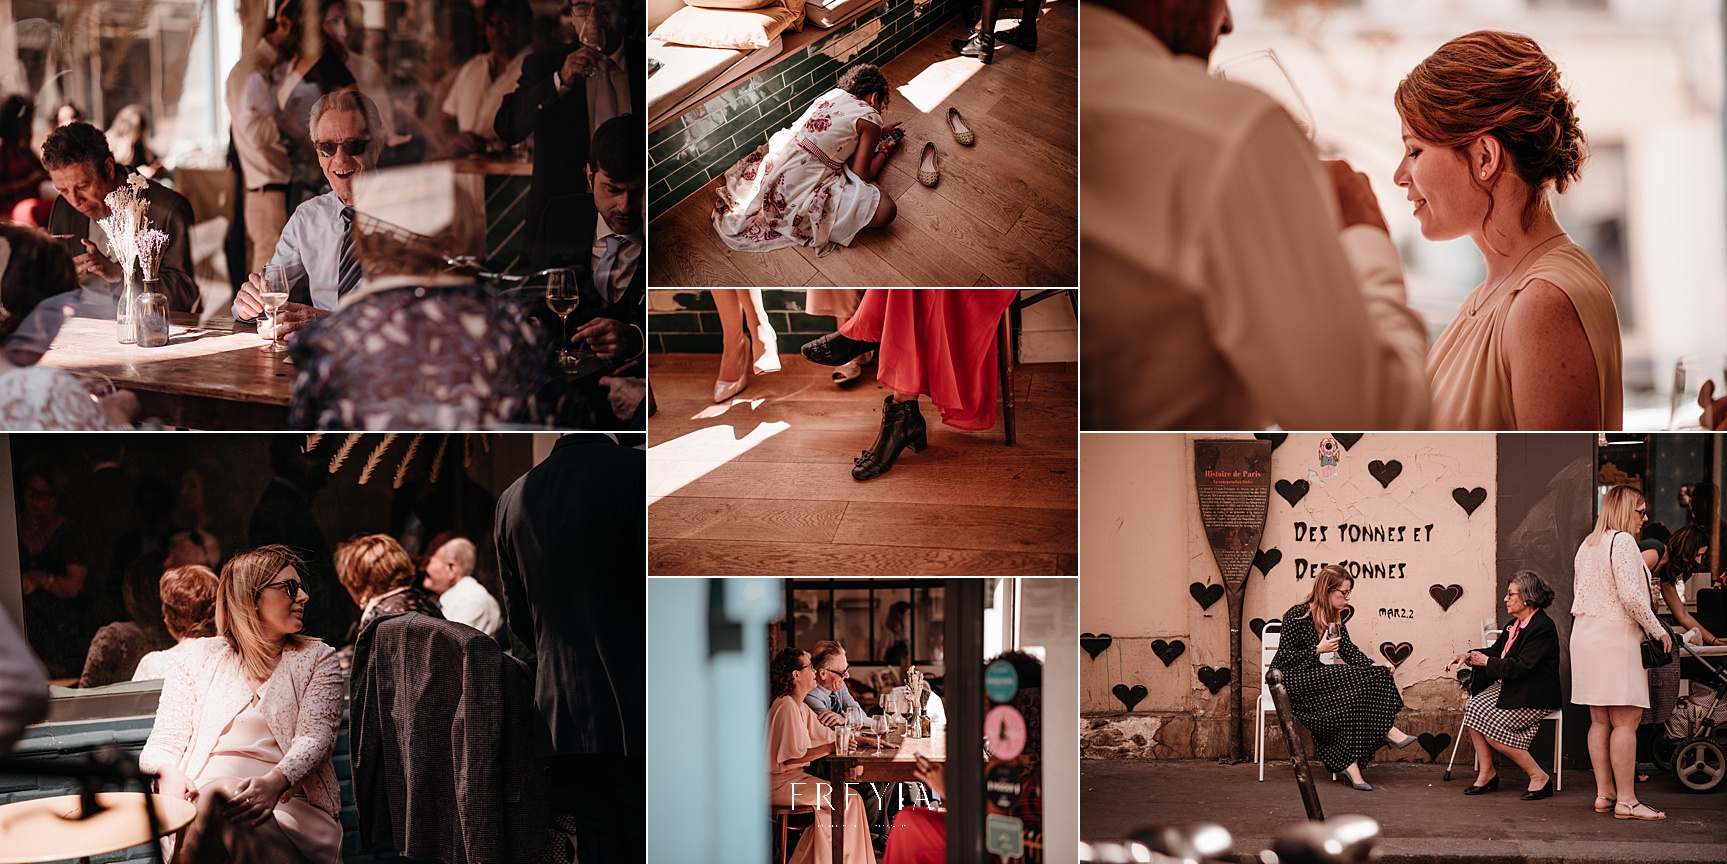 P + F |  mariage reportage alternatif moody intime vintage naturel boho boheme |  PHOTOGRAPHE mariage PARIS france destination  | FREYIA photography_-161.jpg